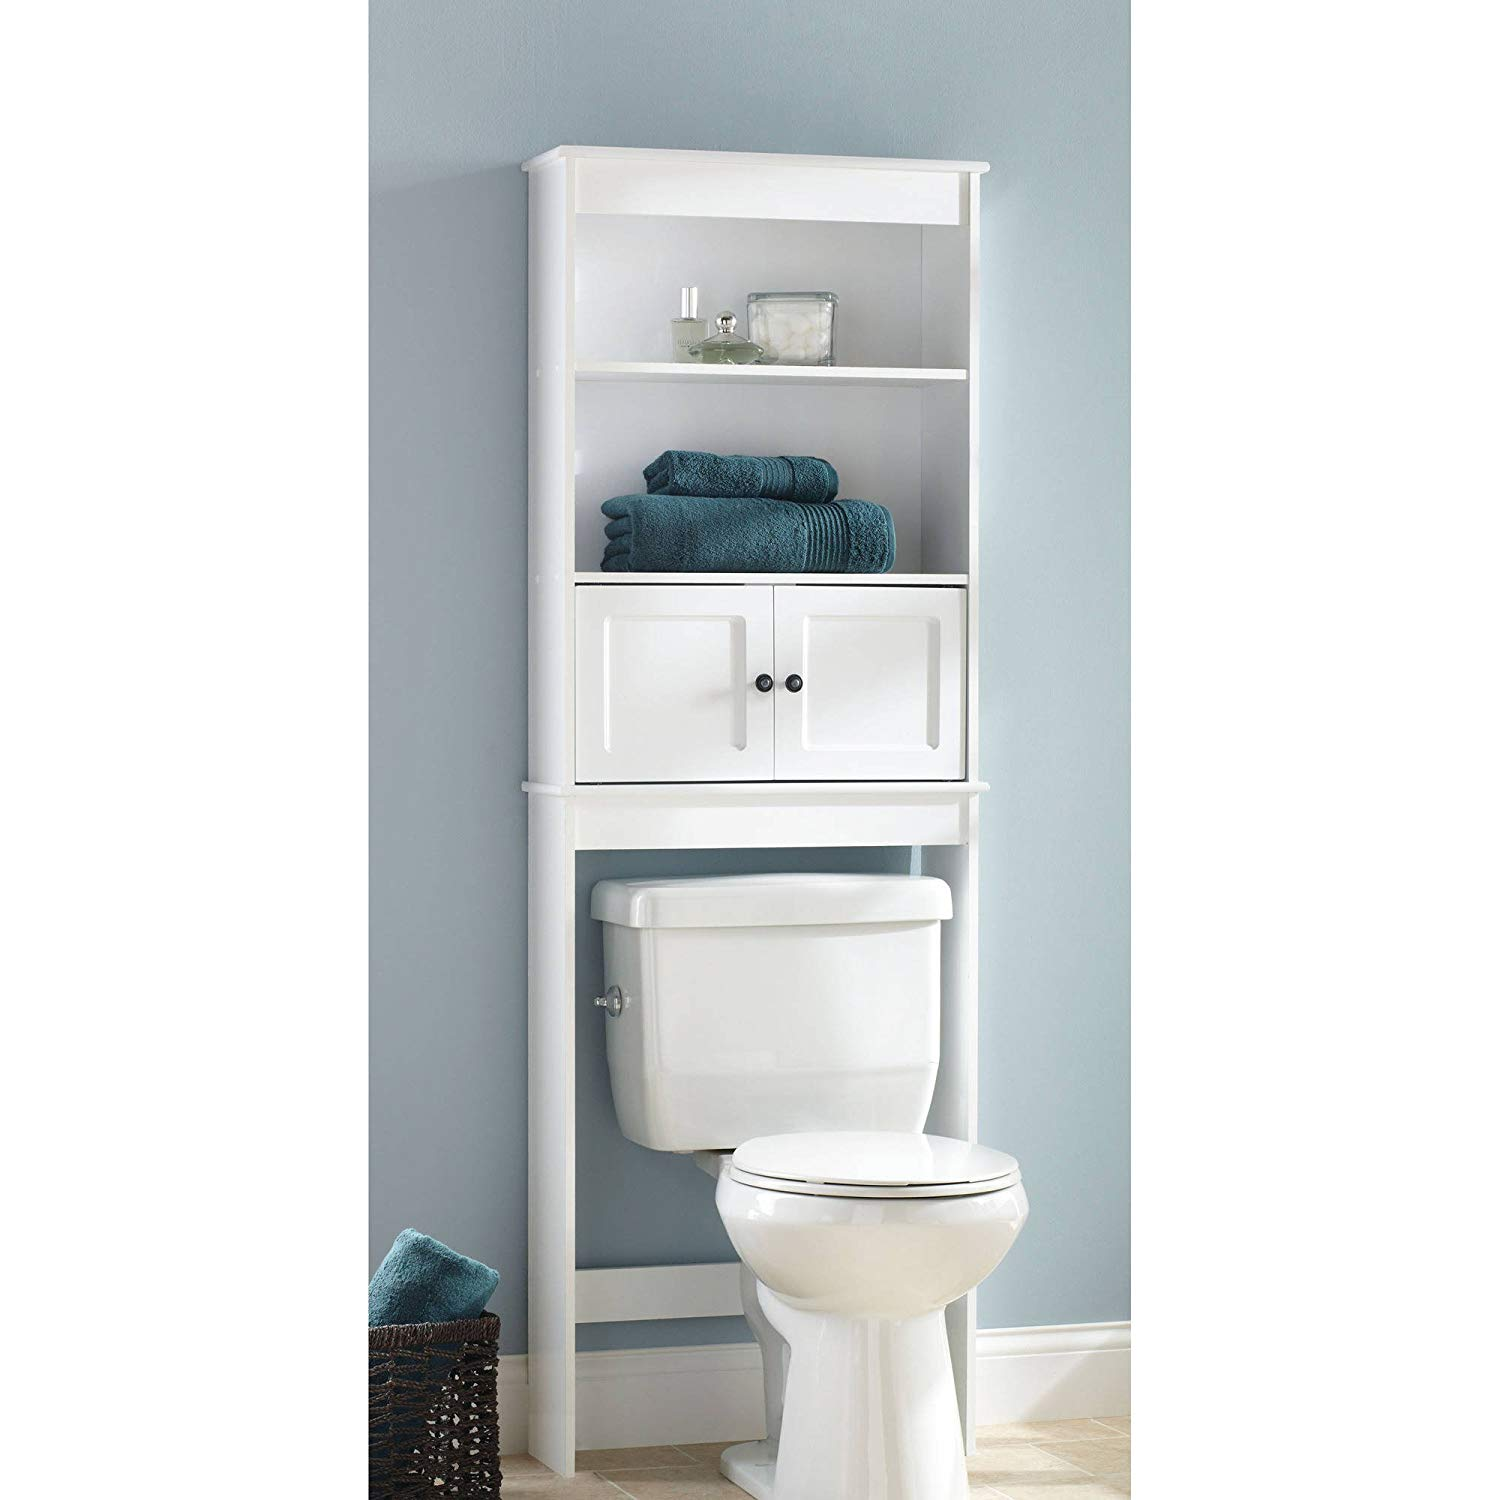 cheap space saver bathroom cabinets find space saver bathroom rh guide alibaba com Walmart Bathroom Cabinets Beautiful Bathroom Space Saver Cabinet